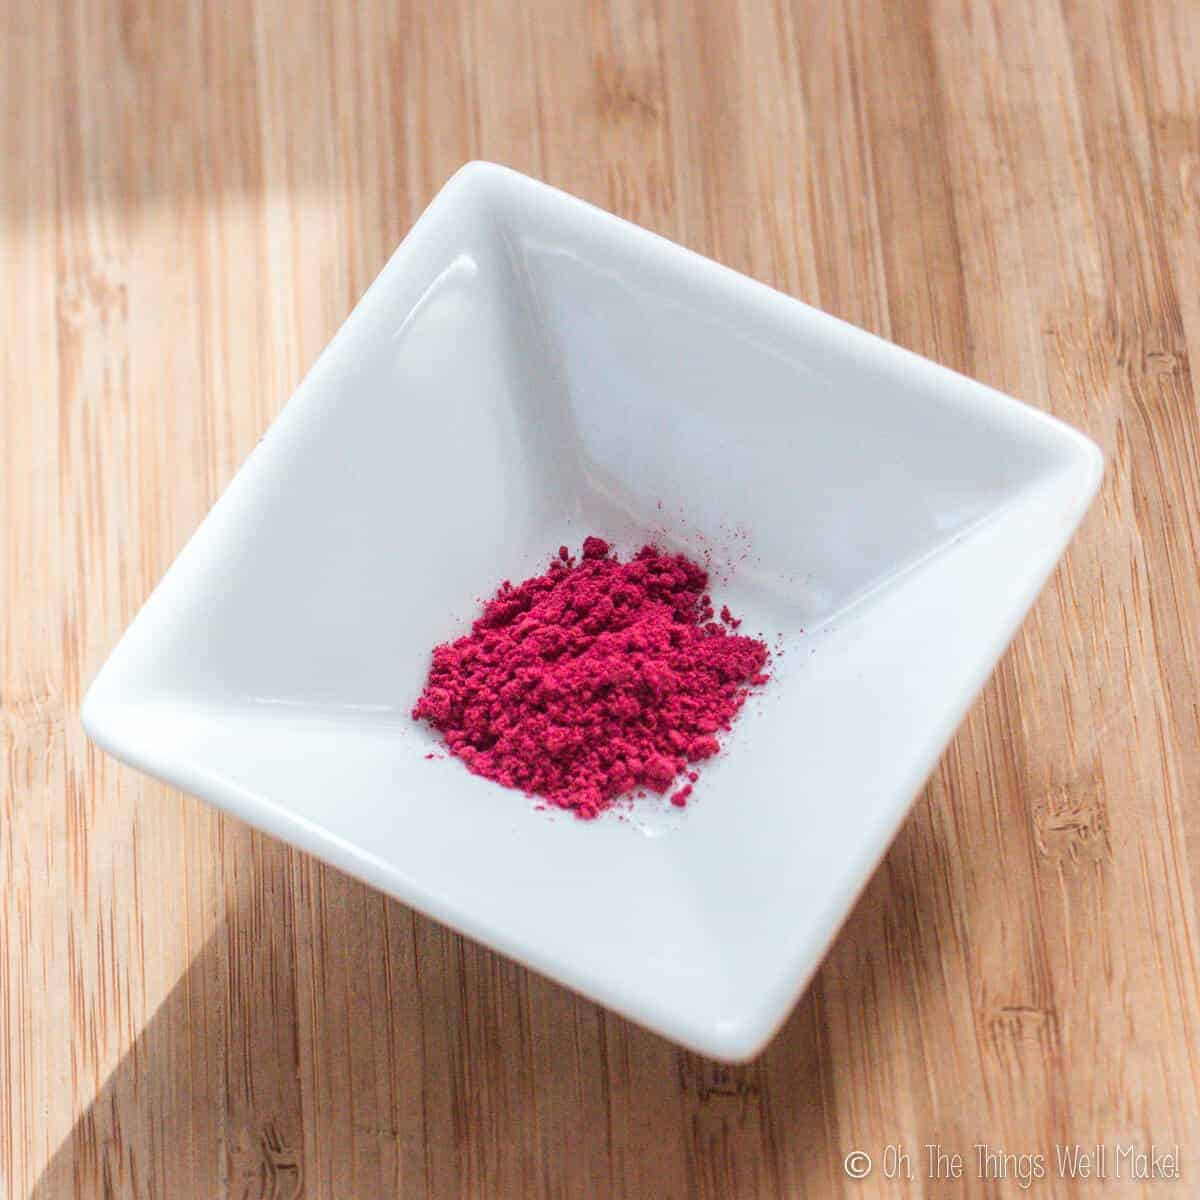 overhead view of a small bowl with beetroot powder